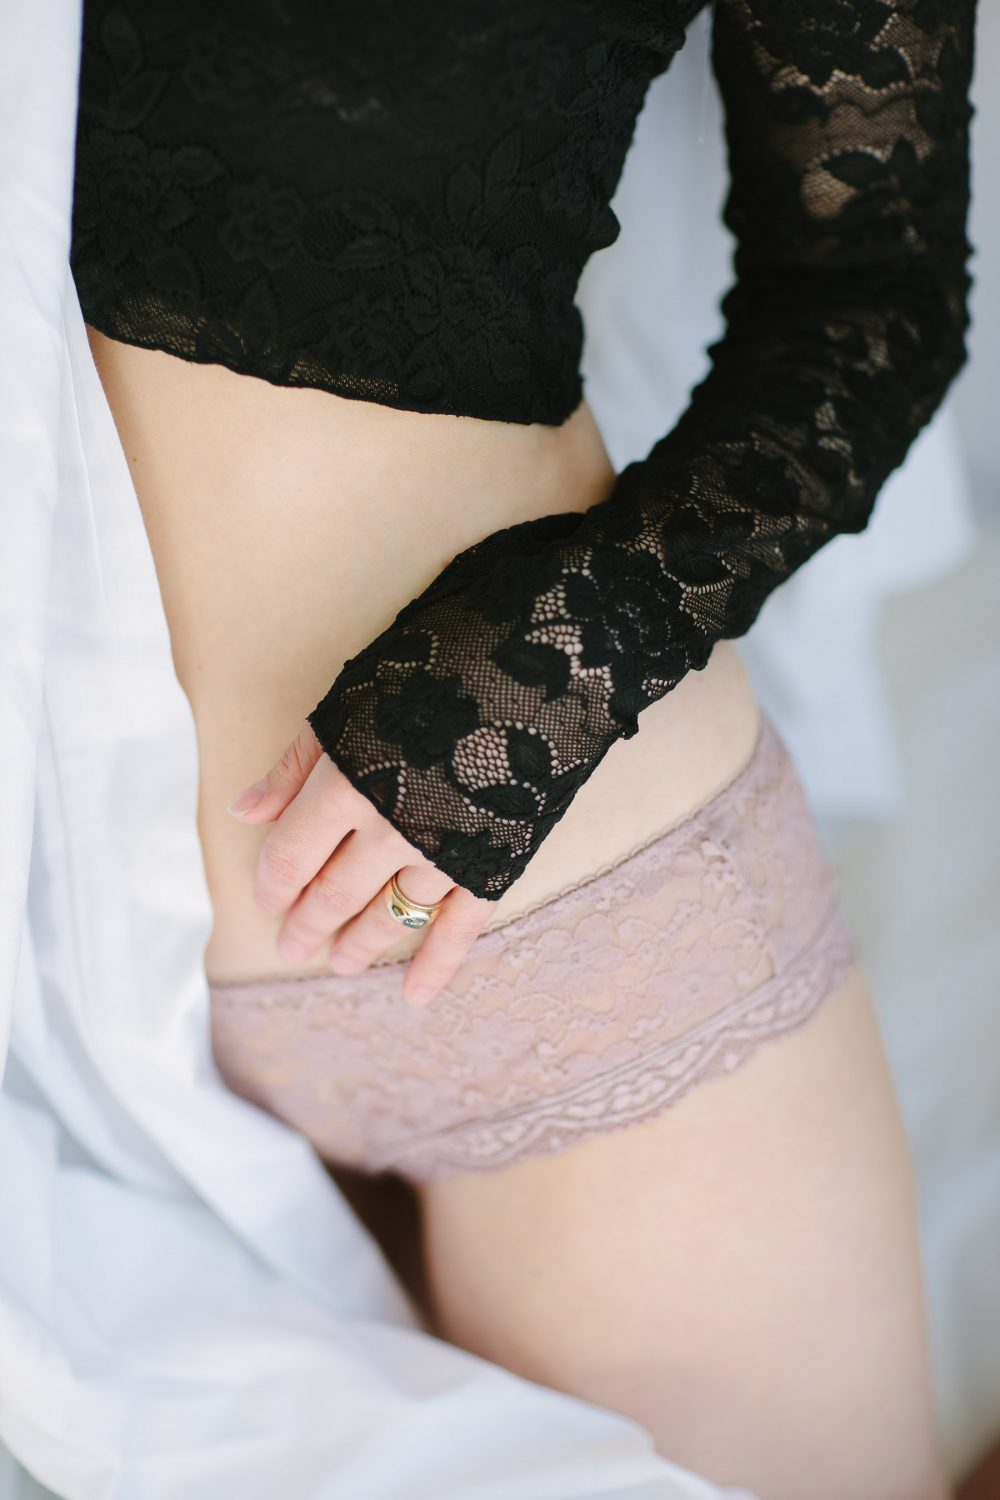 20-boston-couples-boudoir-photographer